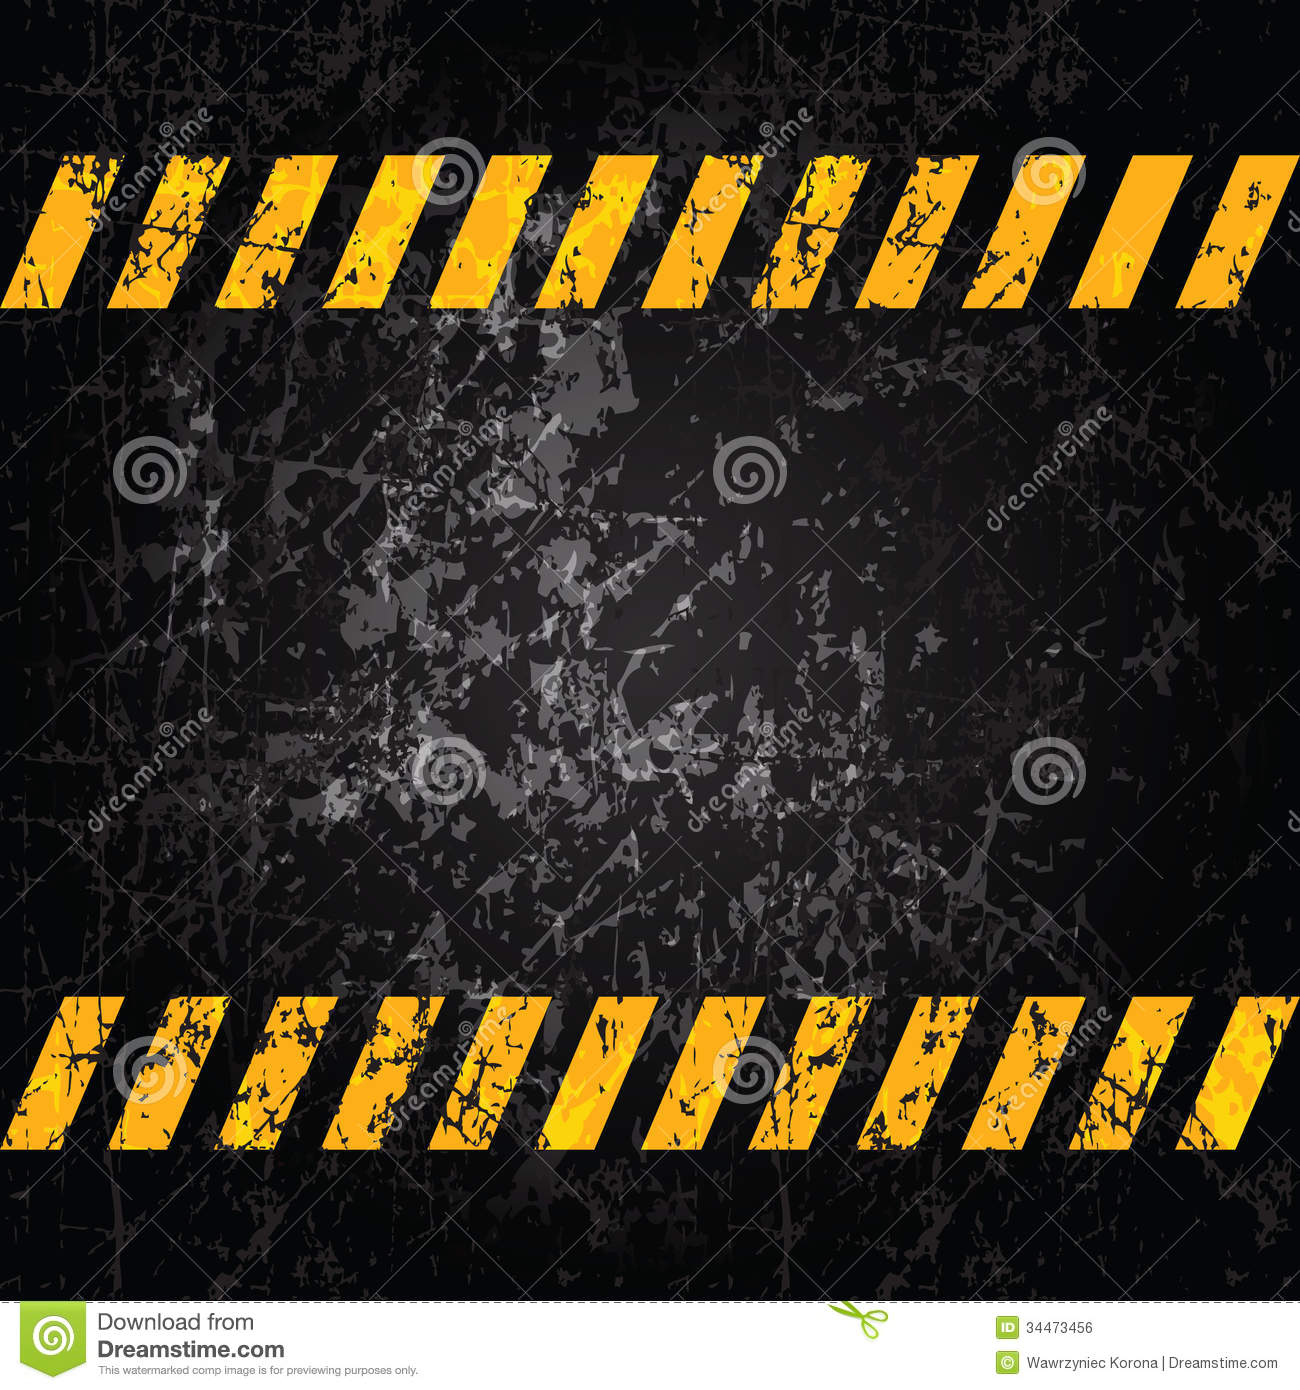 Black Diamond Plate Wallpaper Vector Grunge Background With Caution Stripes Royalty Free